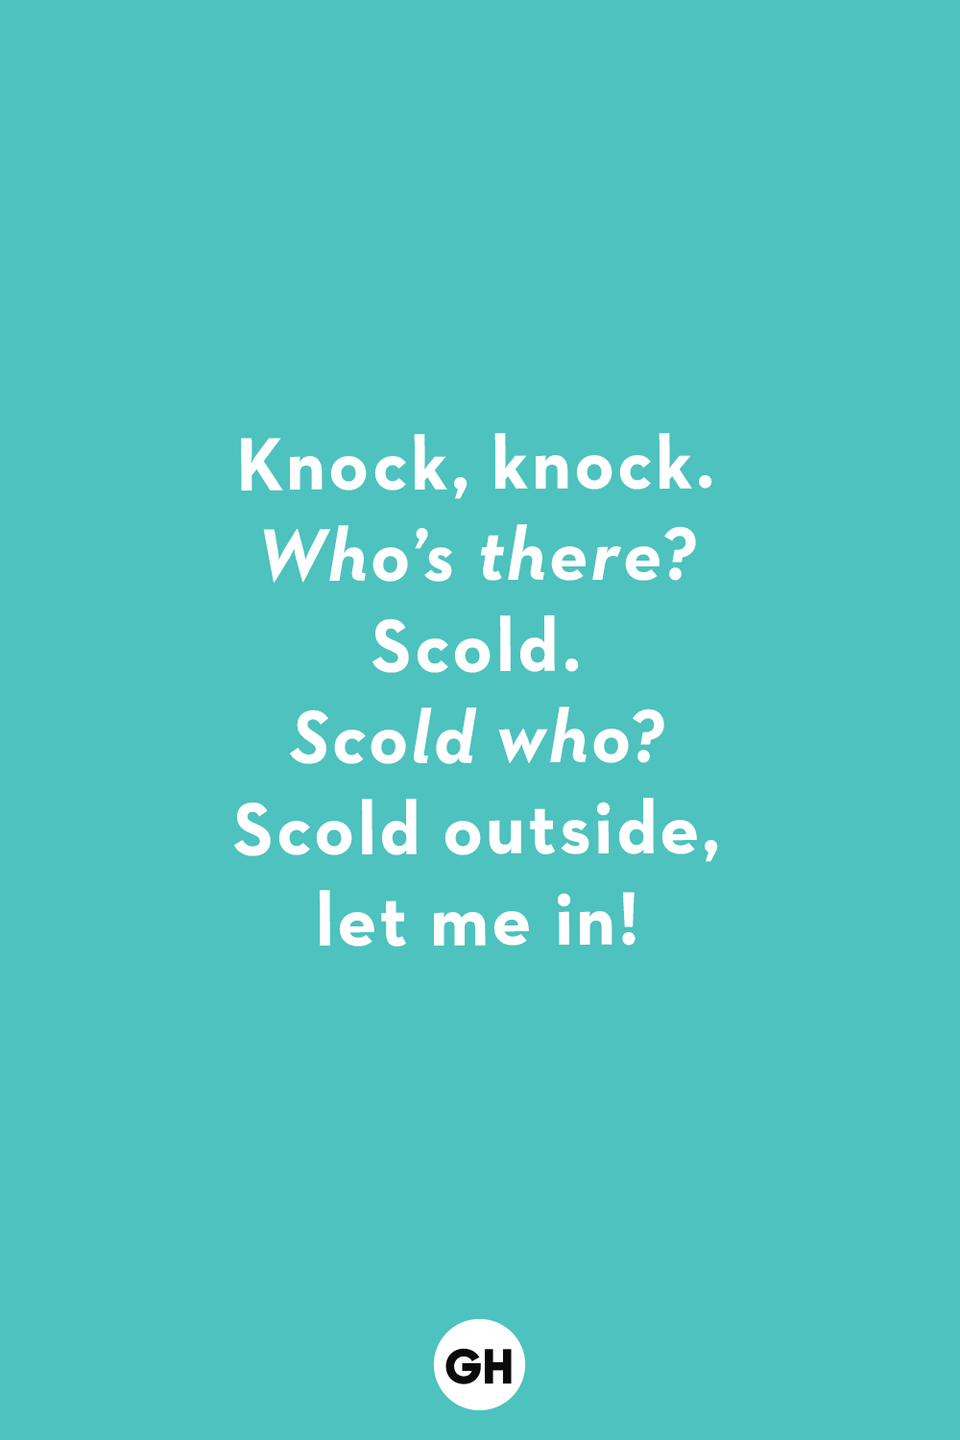 <p><em>Who's there?</em></p><p>Scold.</p><p><em>Scold who?</em></p><p>Scold outside, let me in!</p>